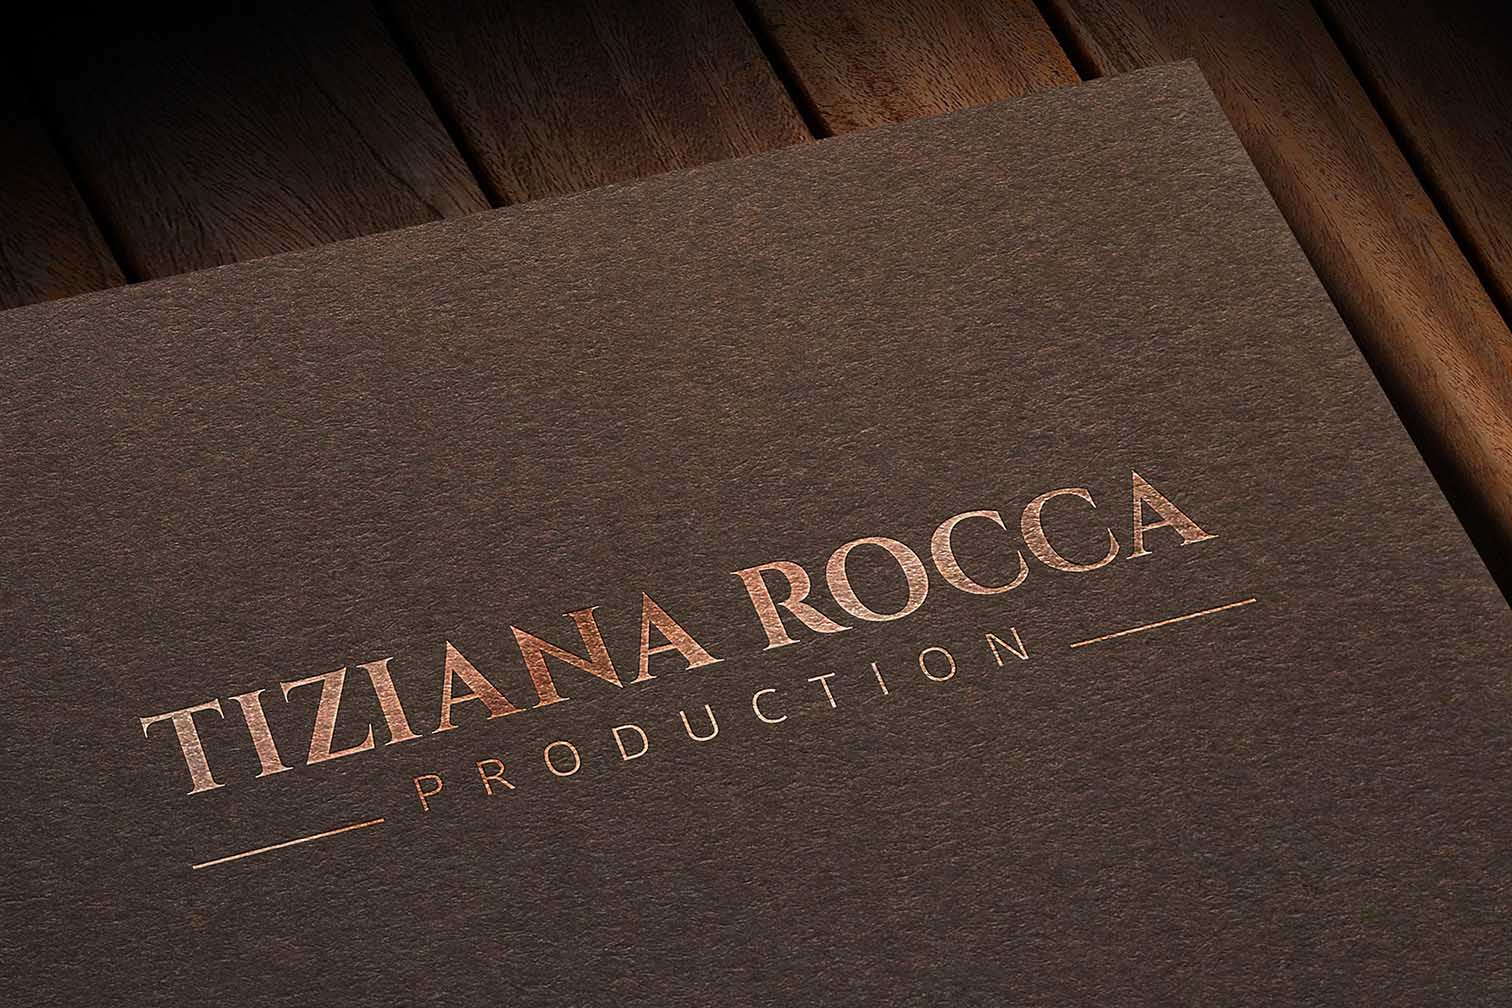 TIZIANA ROCCA PRODUCTION